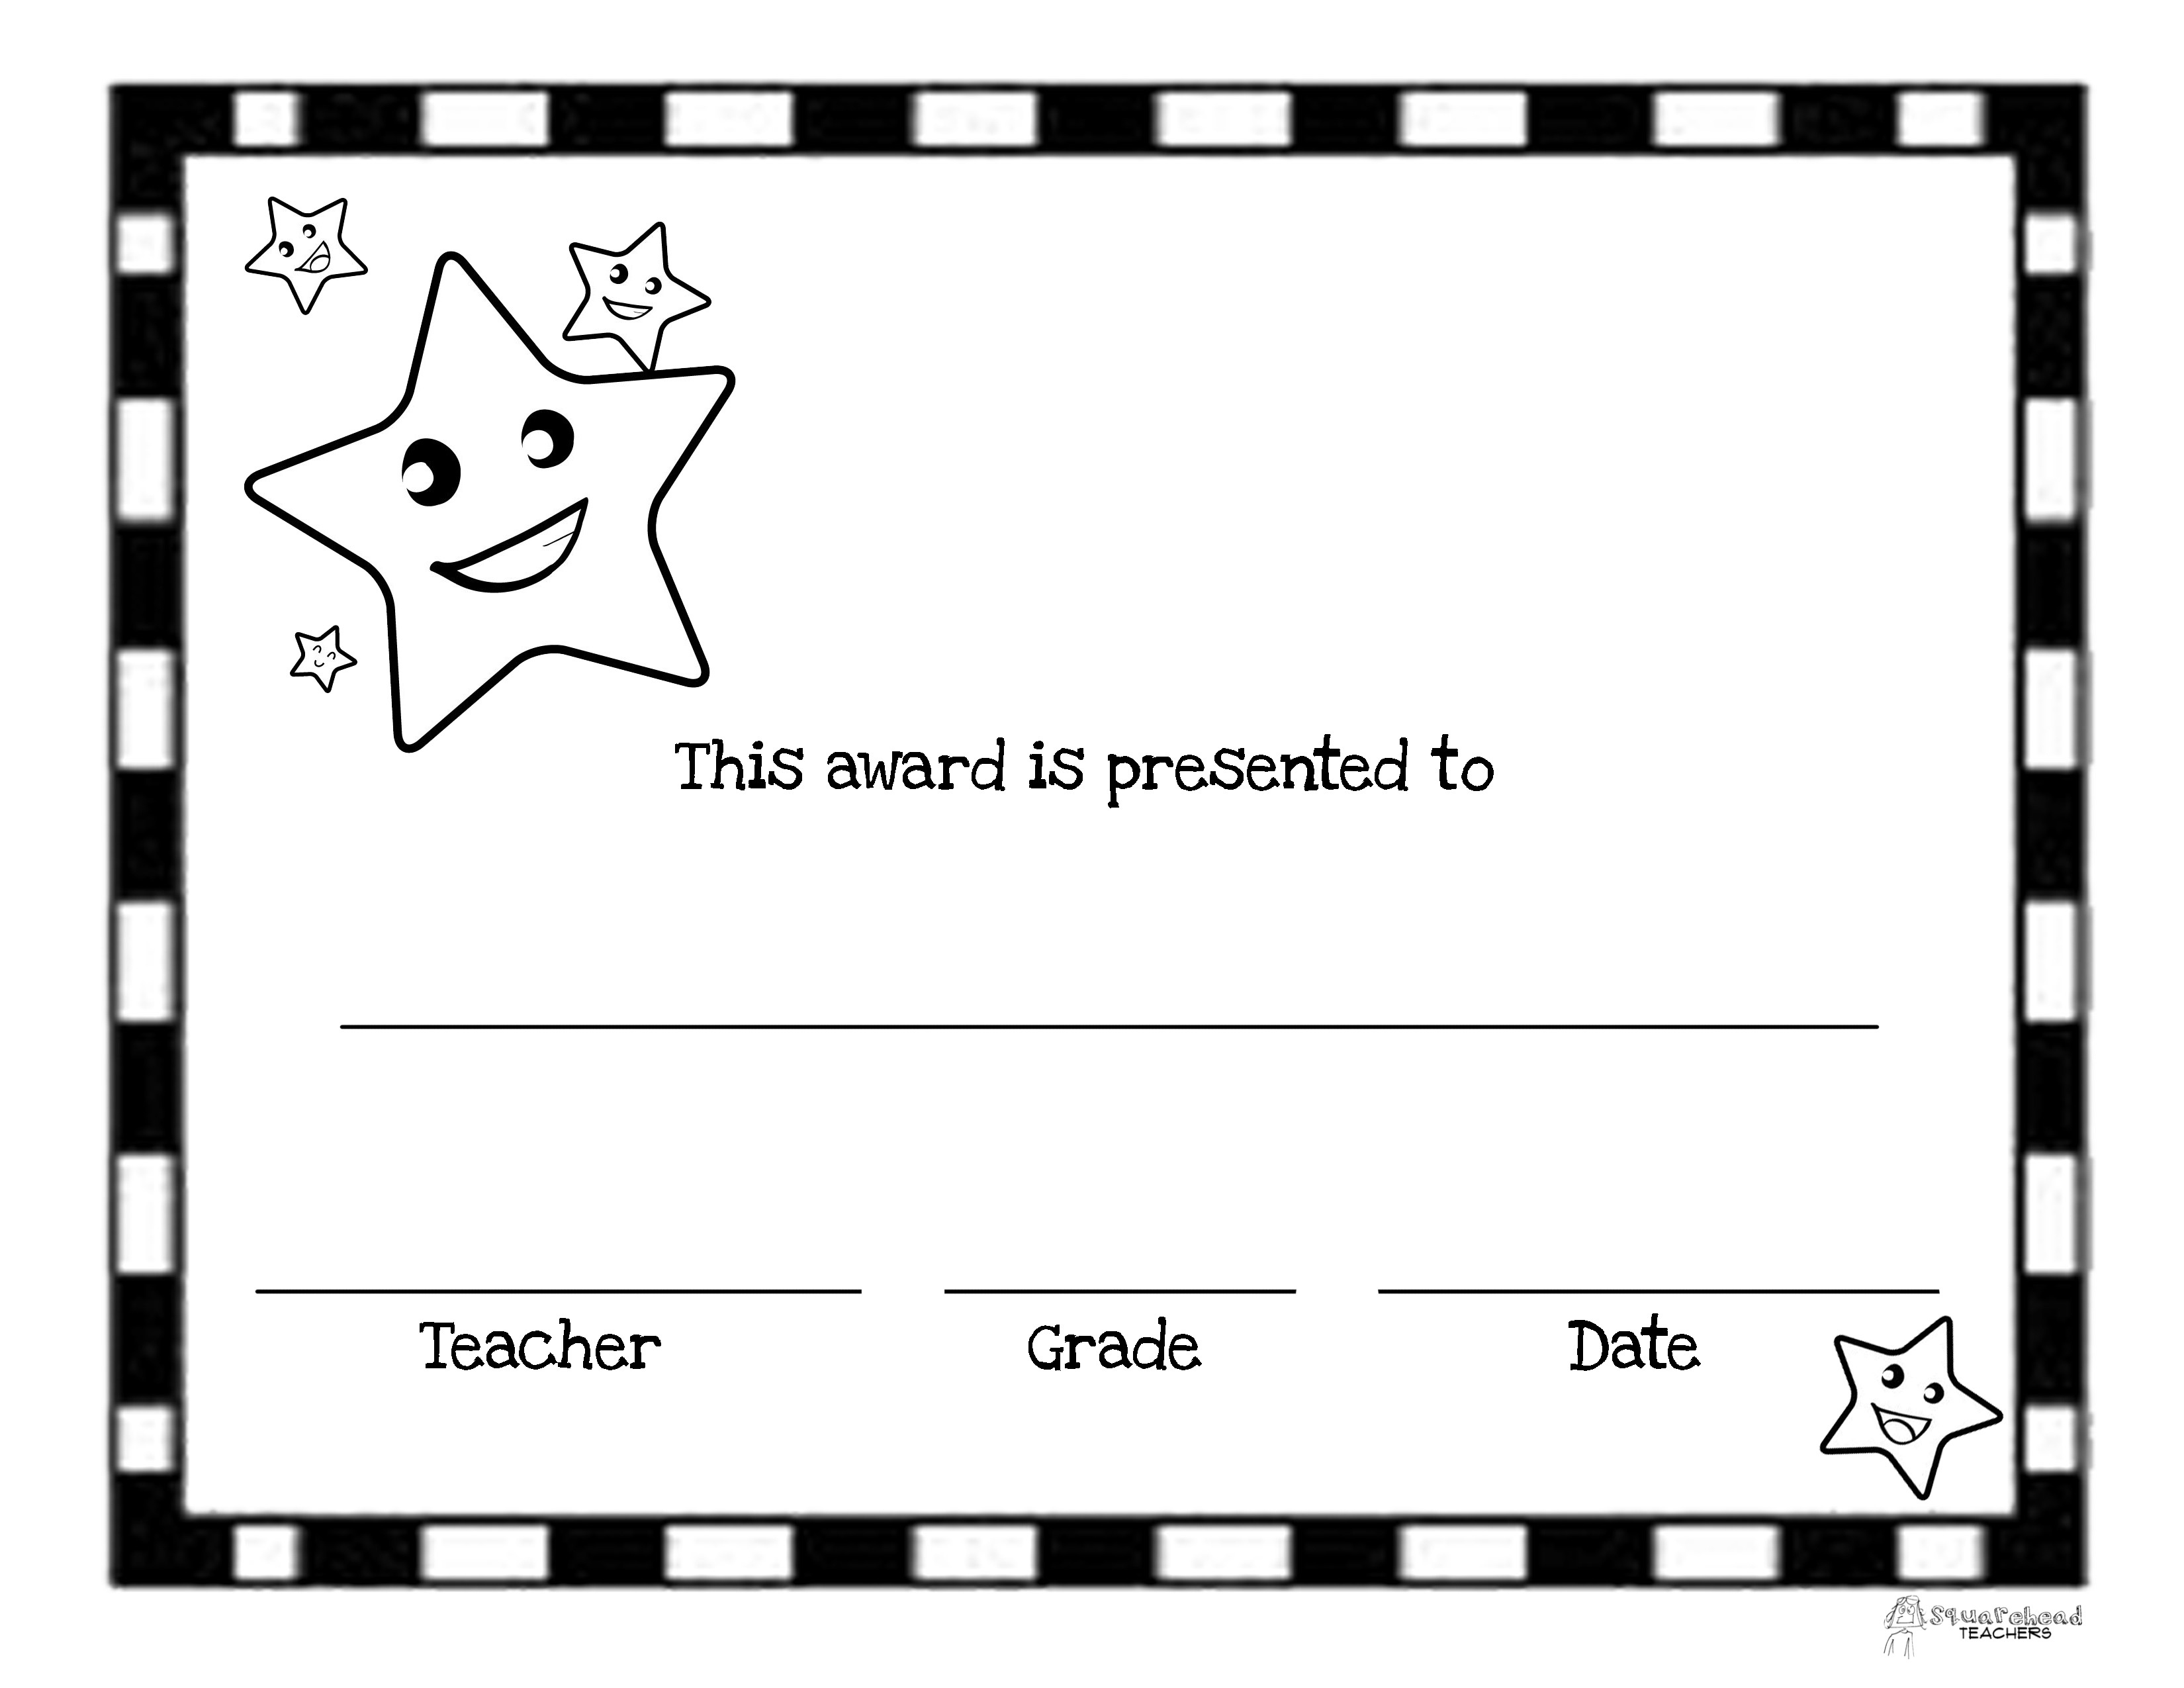 End Of The Year Awards (44 Printable Certificates) | Squarehead Teachers - Free Printable Certificates And Awards